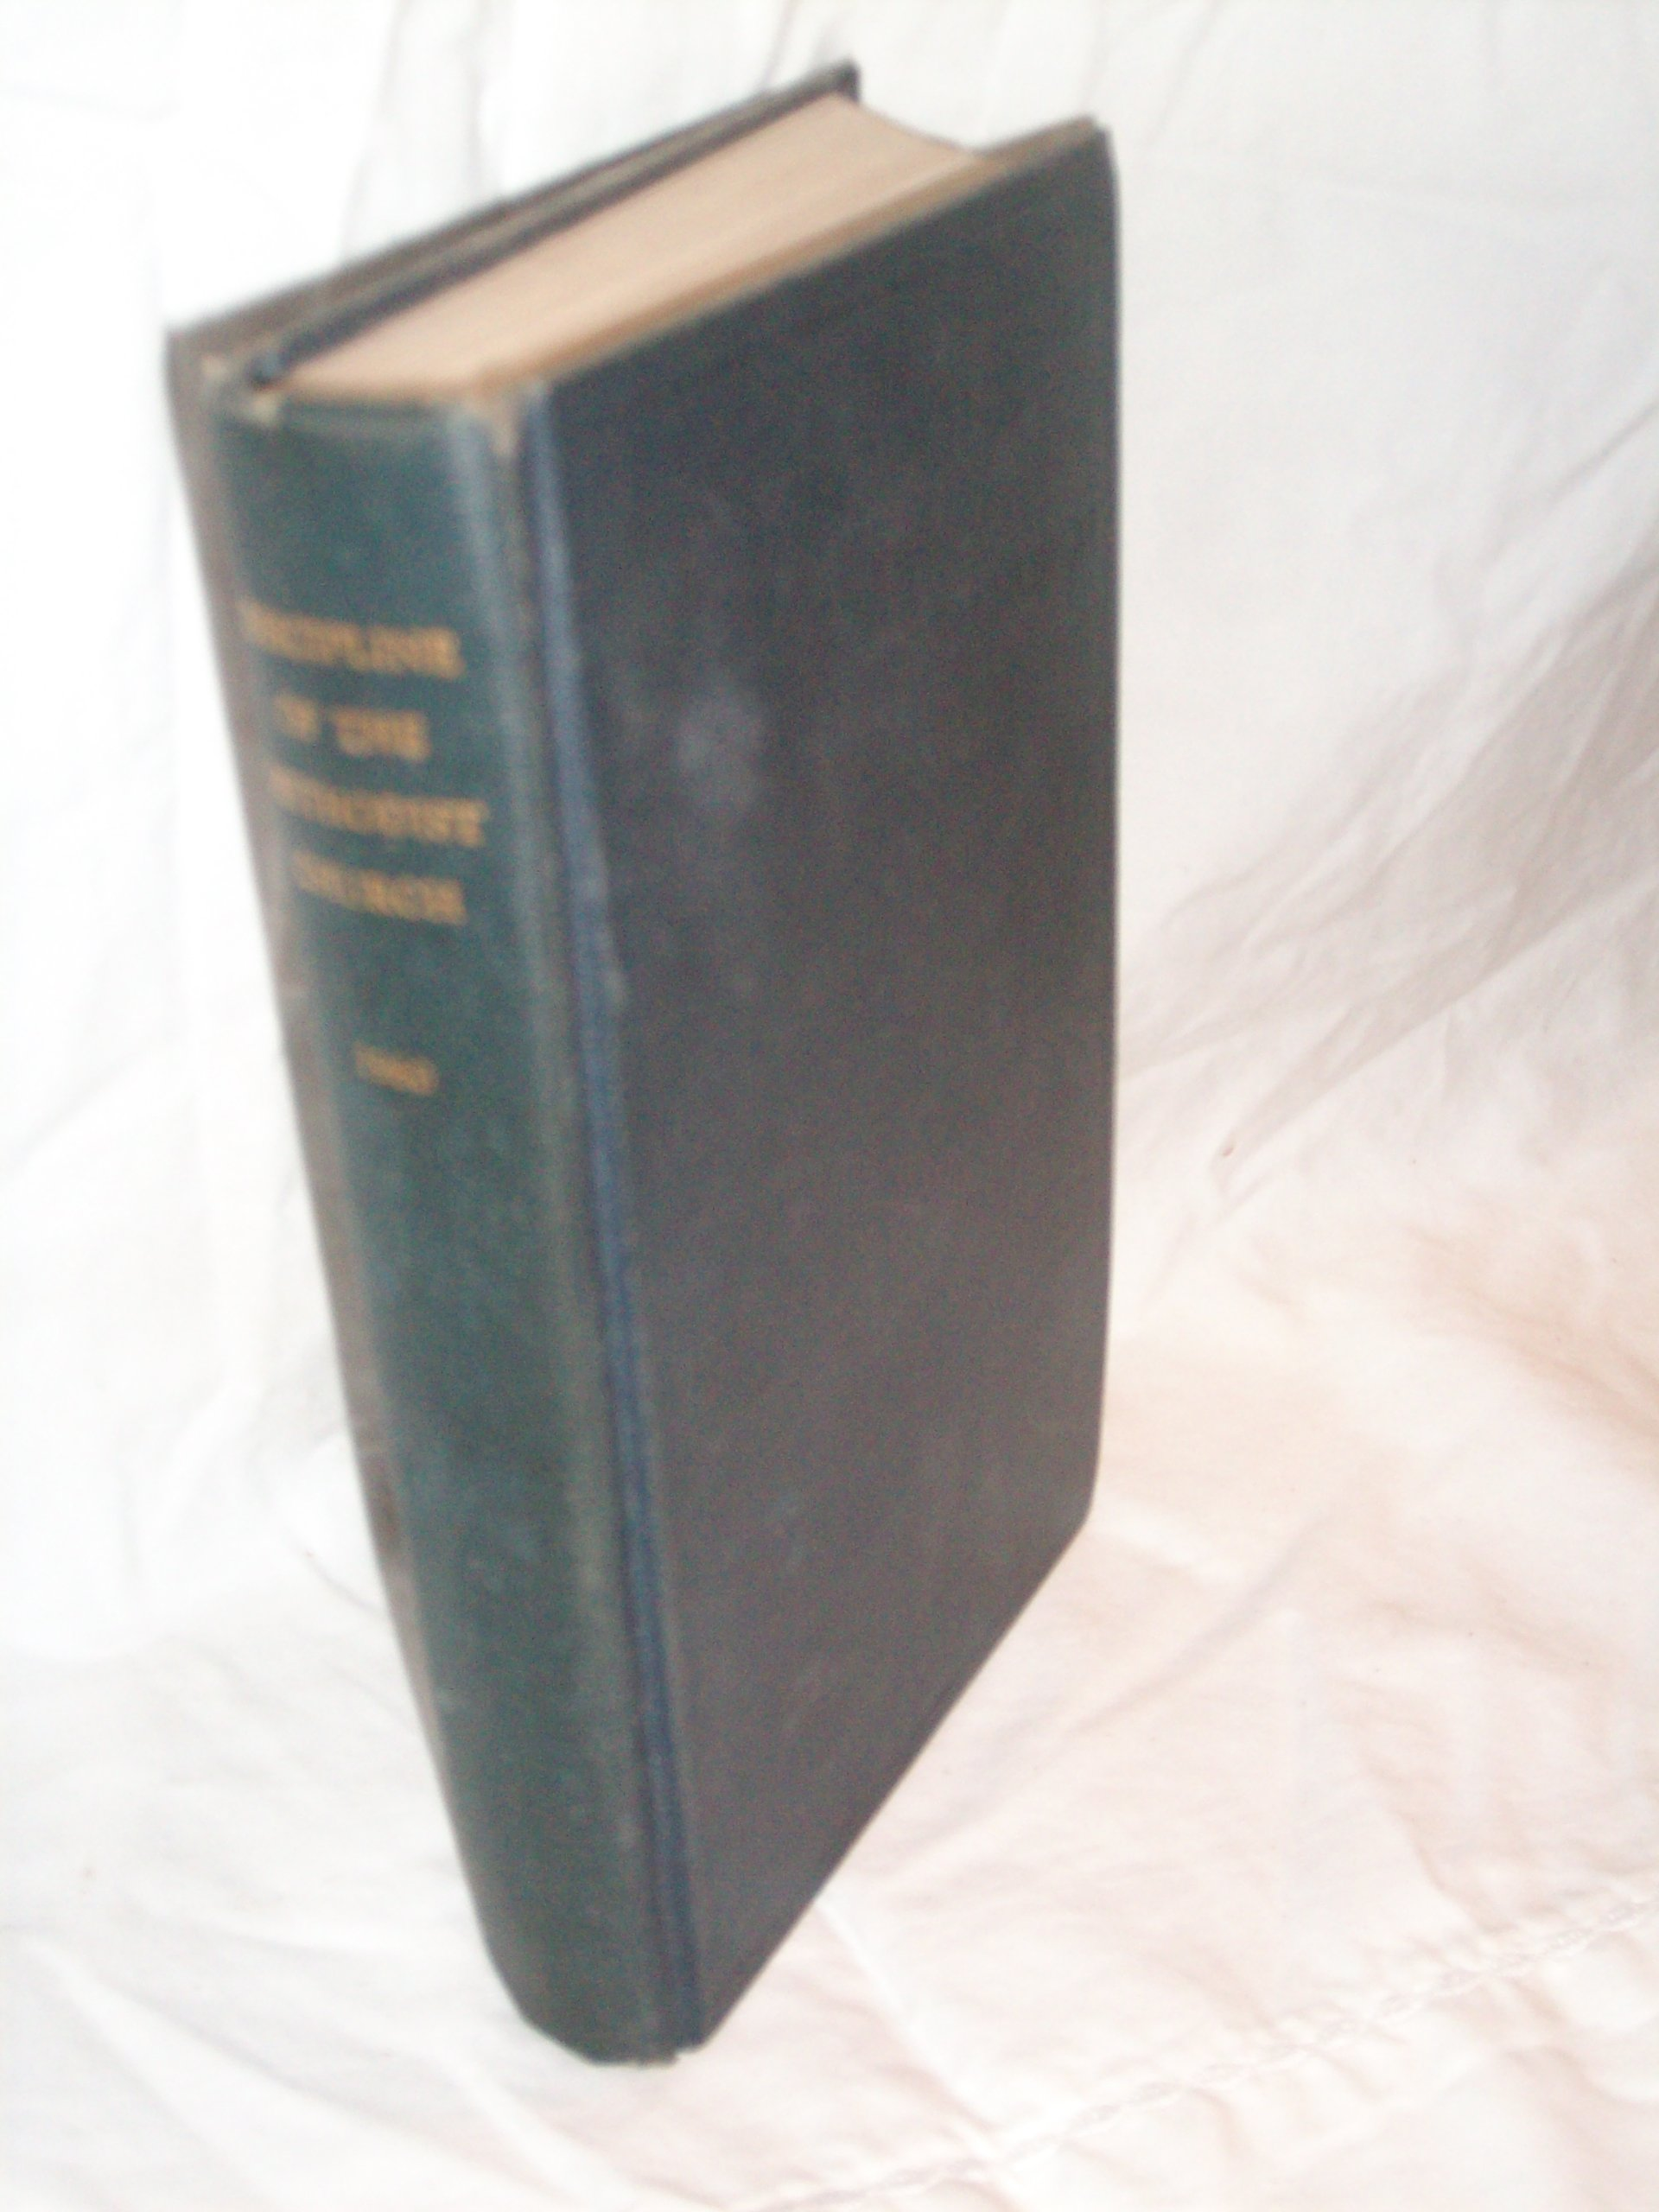 Doctrines and Discipline of the Methodist Church 1960, N/A